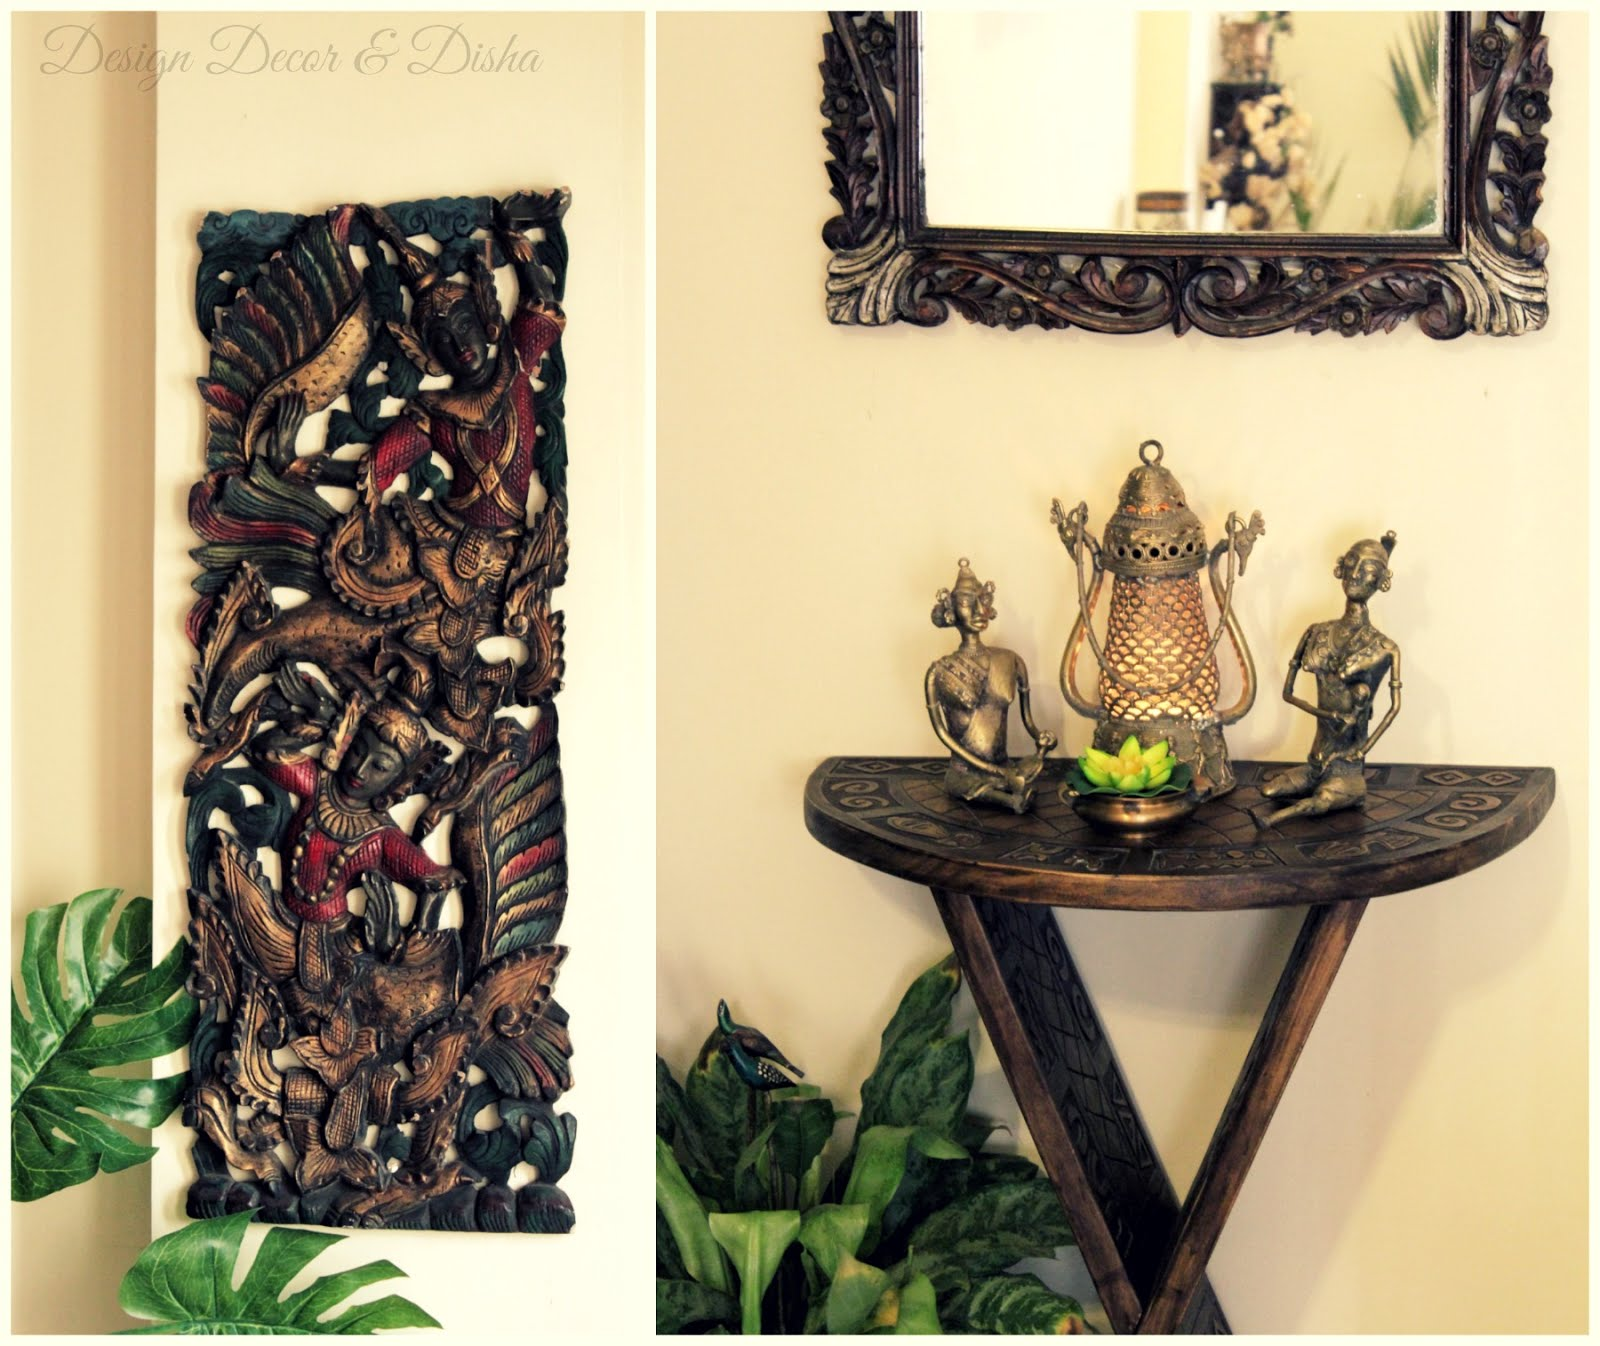 Design Decor Disha An Indian Design Decor Blog Home